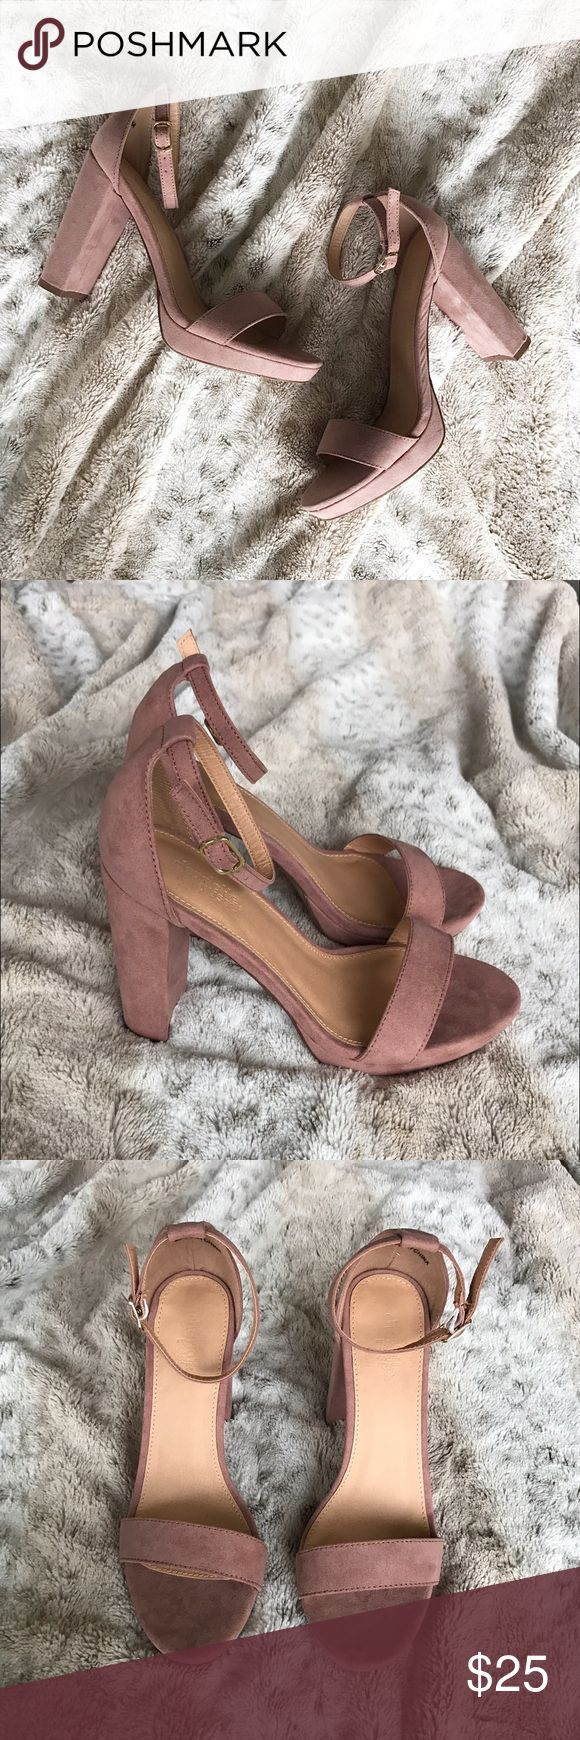 Pink Suede Ankle Strap Chunky Heel size 7 Suede pink/blush color ankle strap with chunky heels. Gold accent on the straps. Brand new! Never worn! From Charlotte Russe. NOT Steve Madden. Steve Madden Shoes Heels